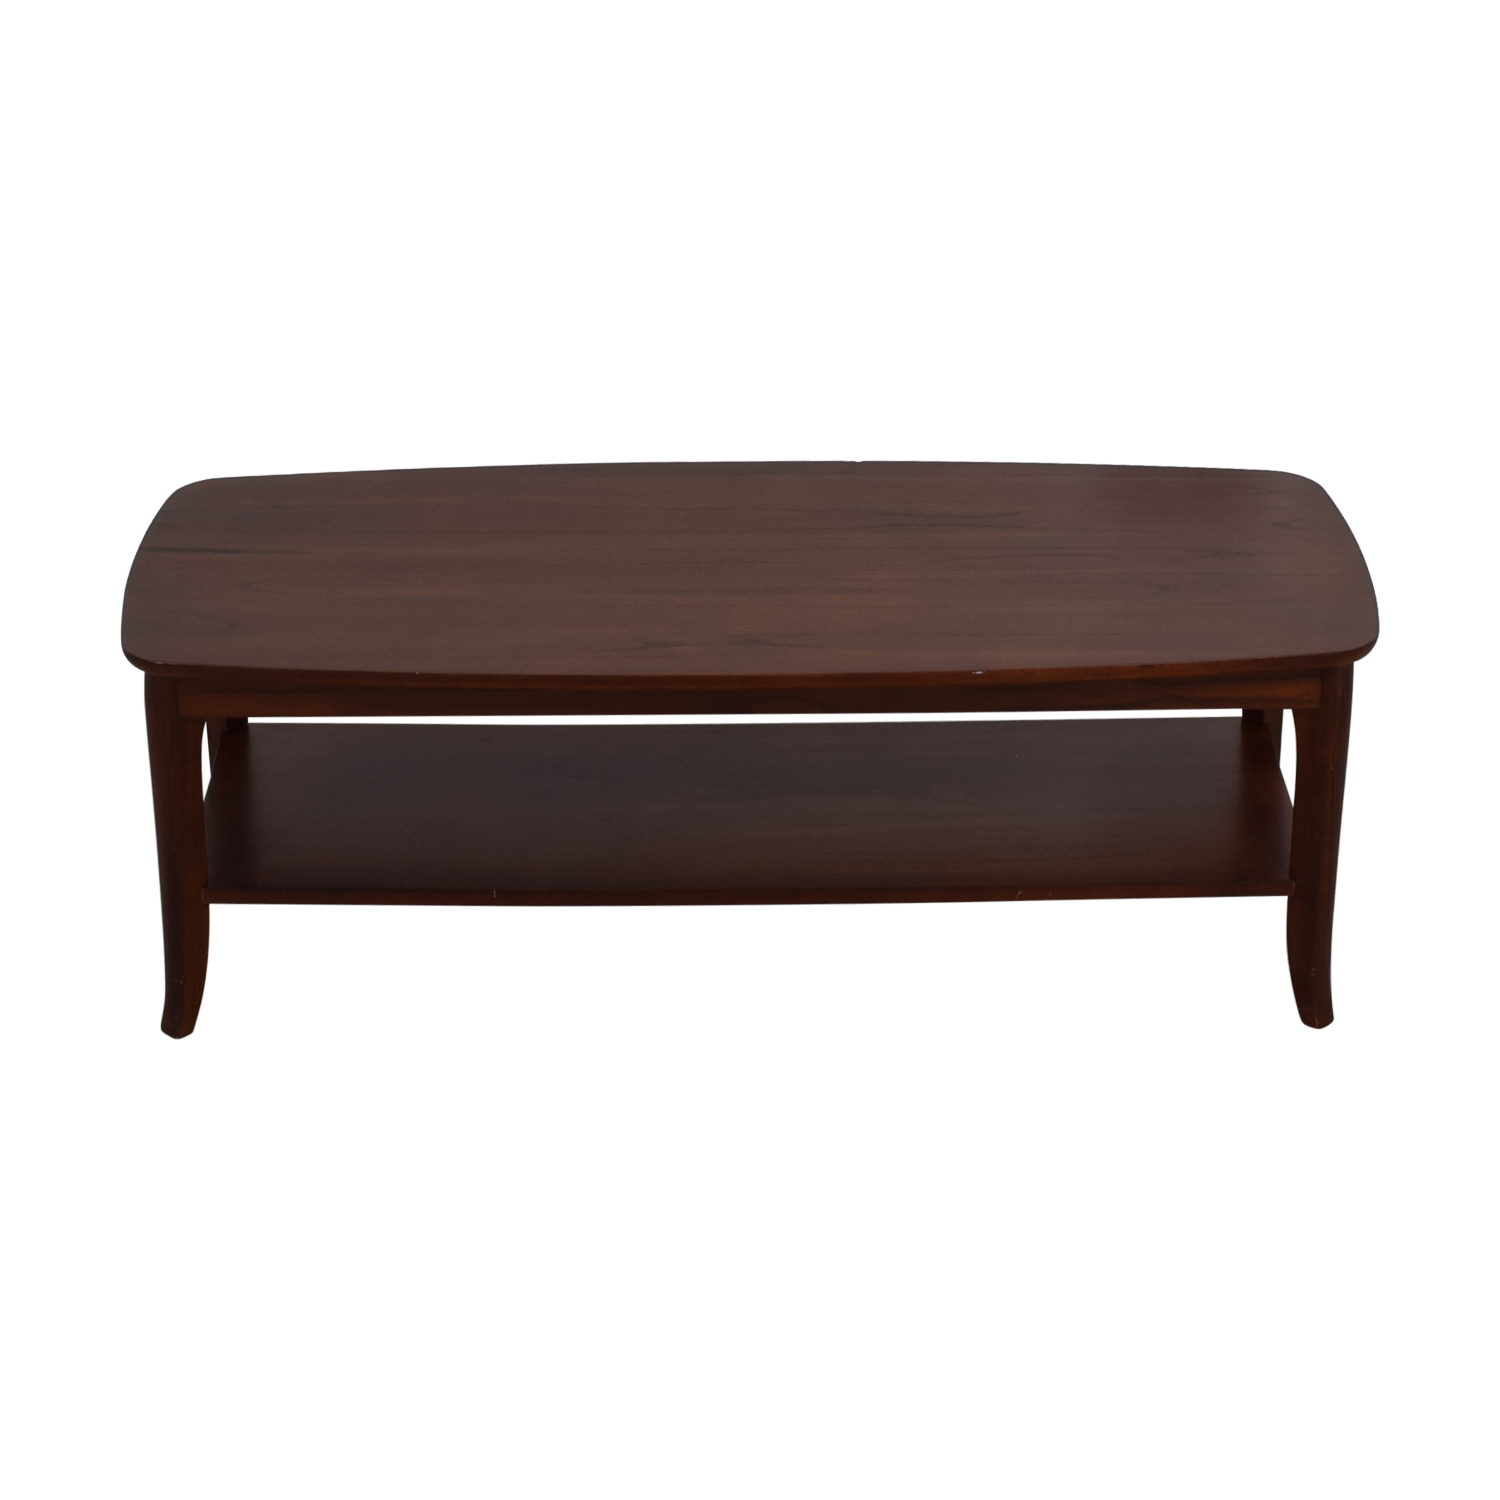 Pottery Barn Pottery Barn Chloe Wood Coffee Table Coffee Tables